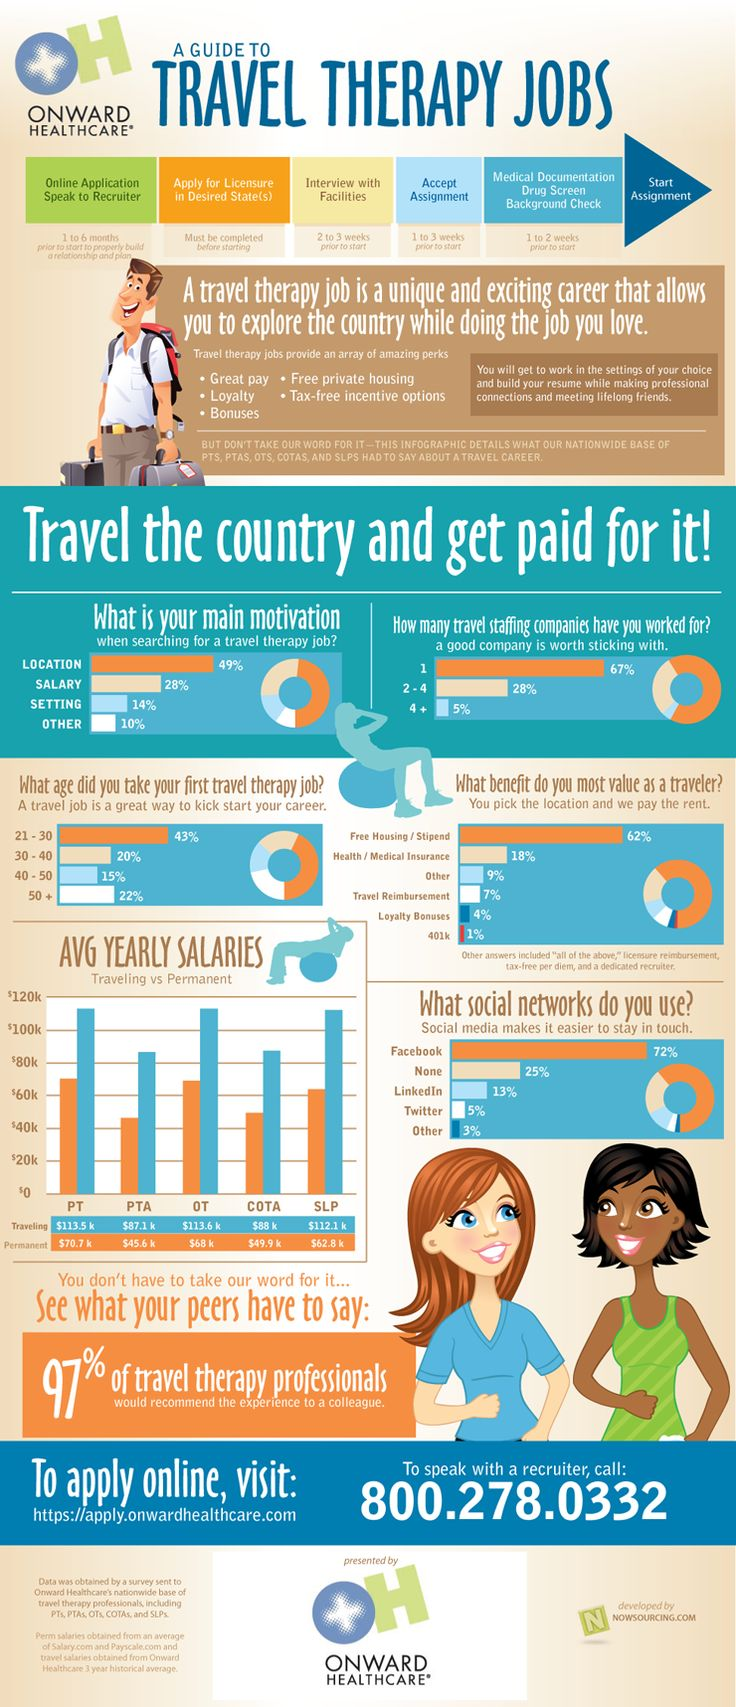 A useful and informative guide to travel therapy jobs by Onward Healthcare.